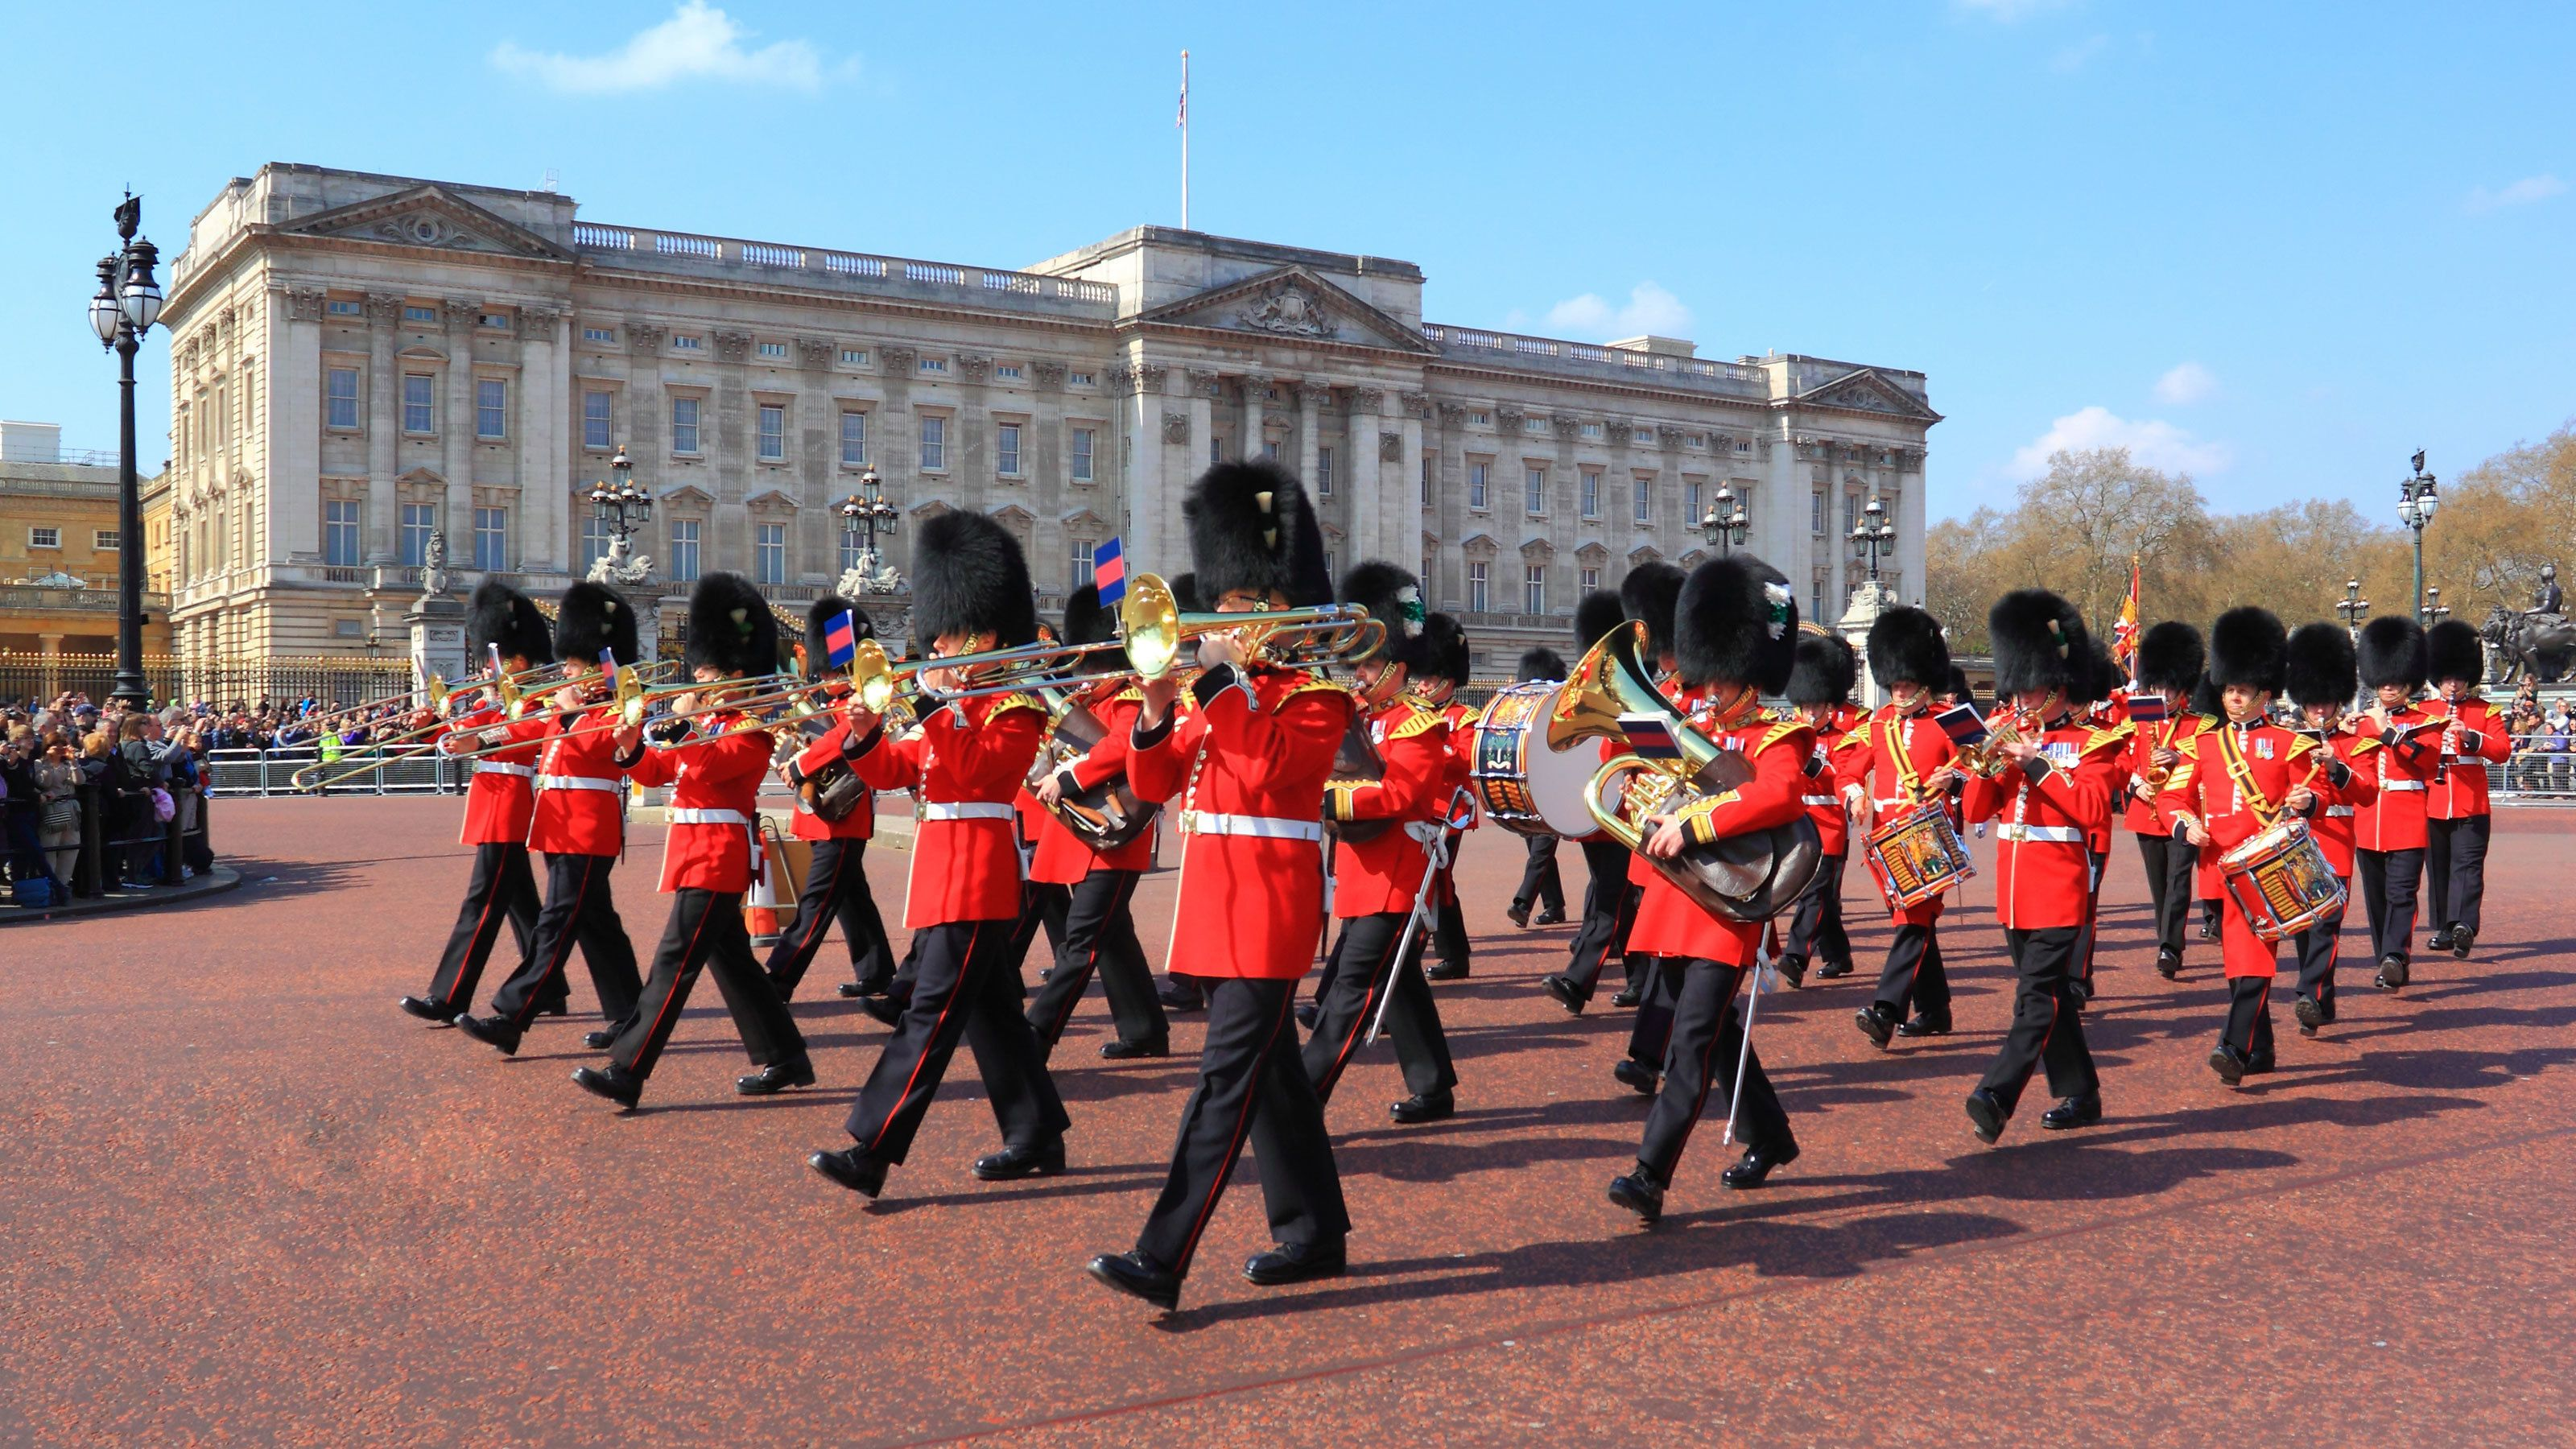 royal palace marching band playing in Buckingham Palace in London